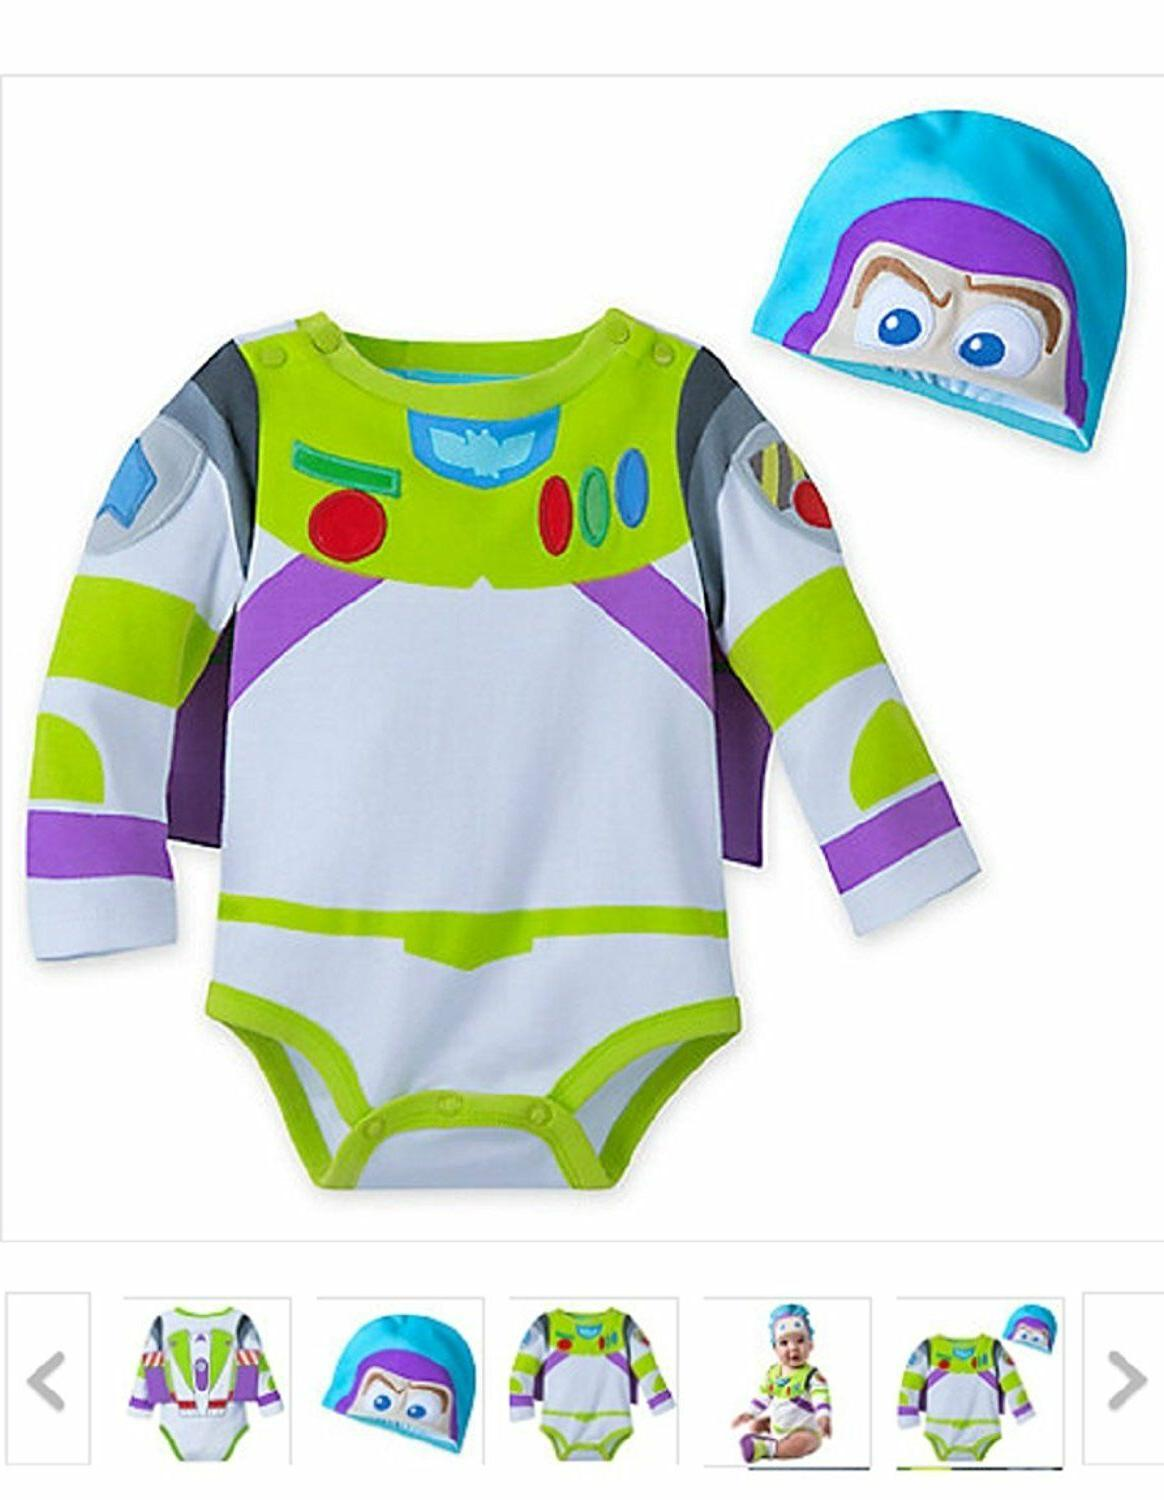 toy story buzz lightyear baby boy costume